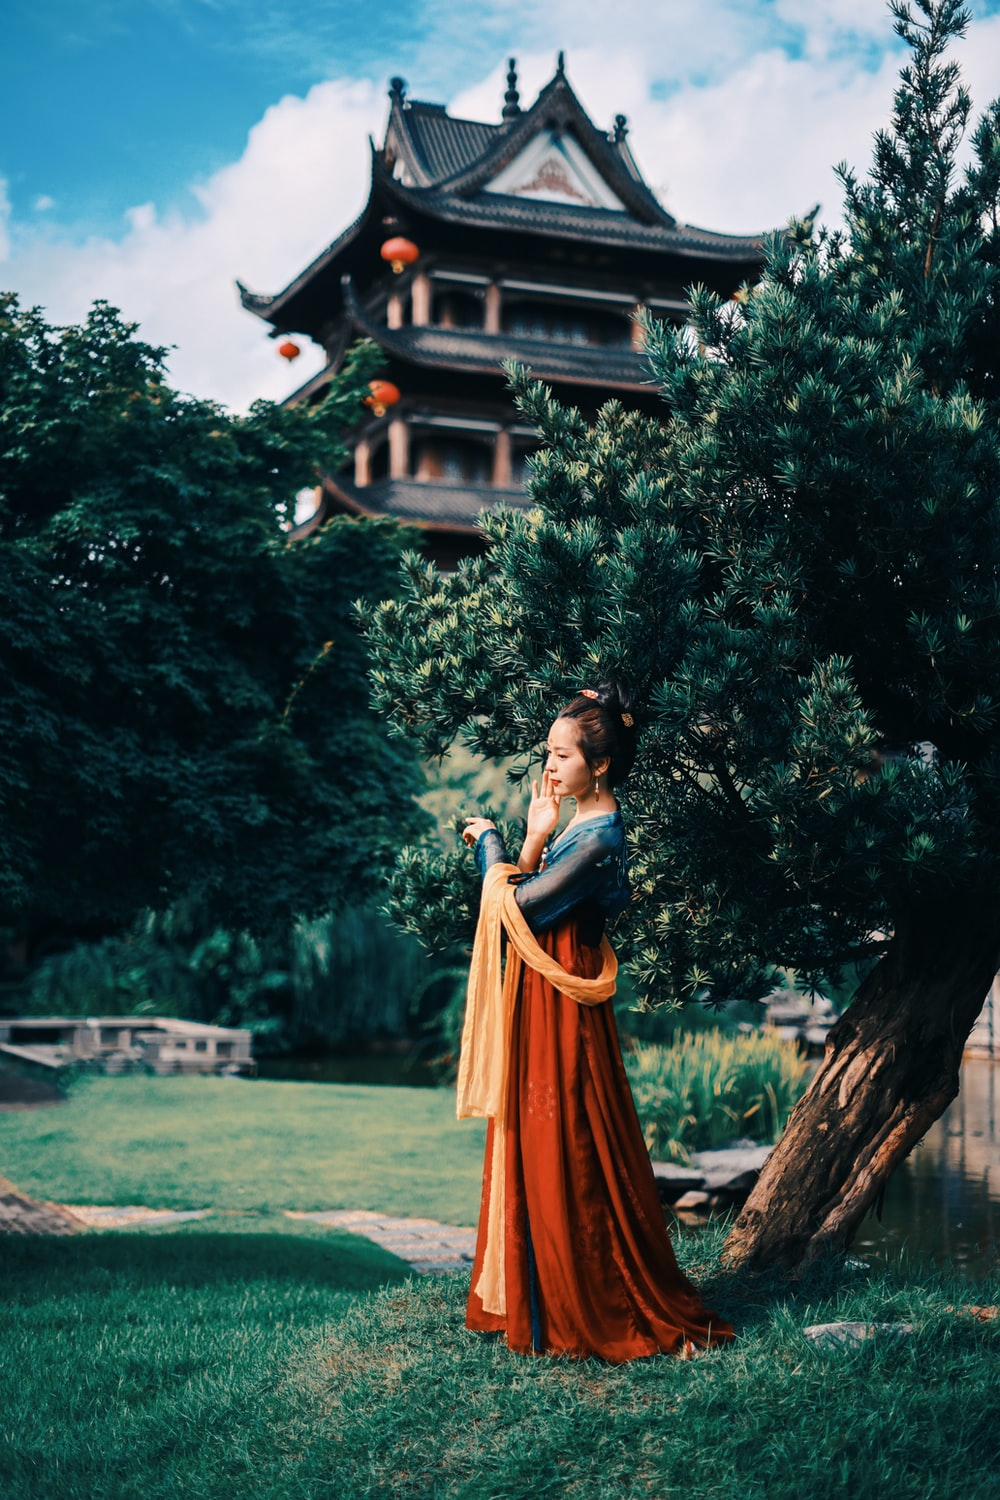 woman in orange dress standing near brown wooden house during daytime